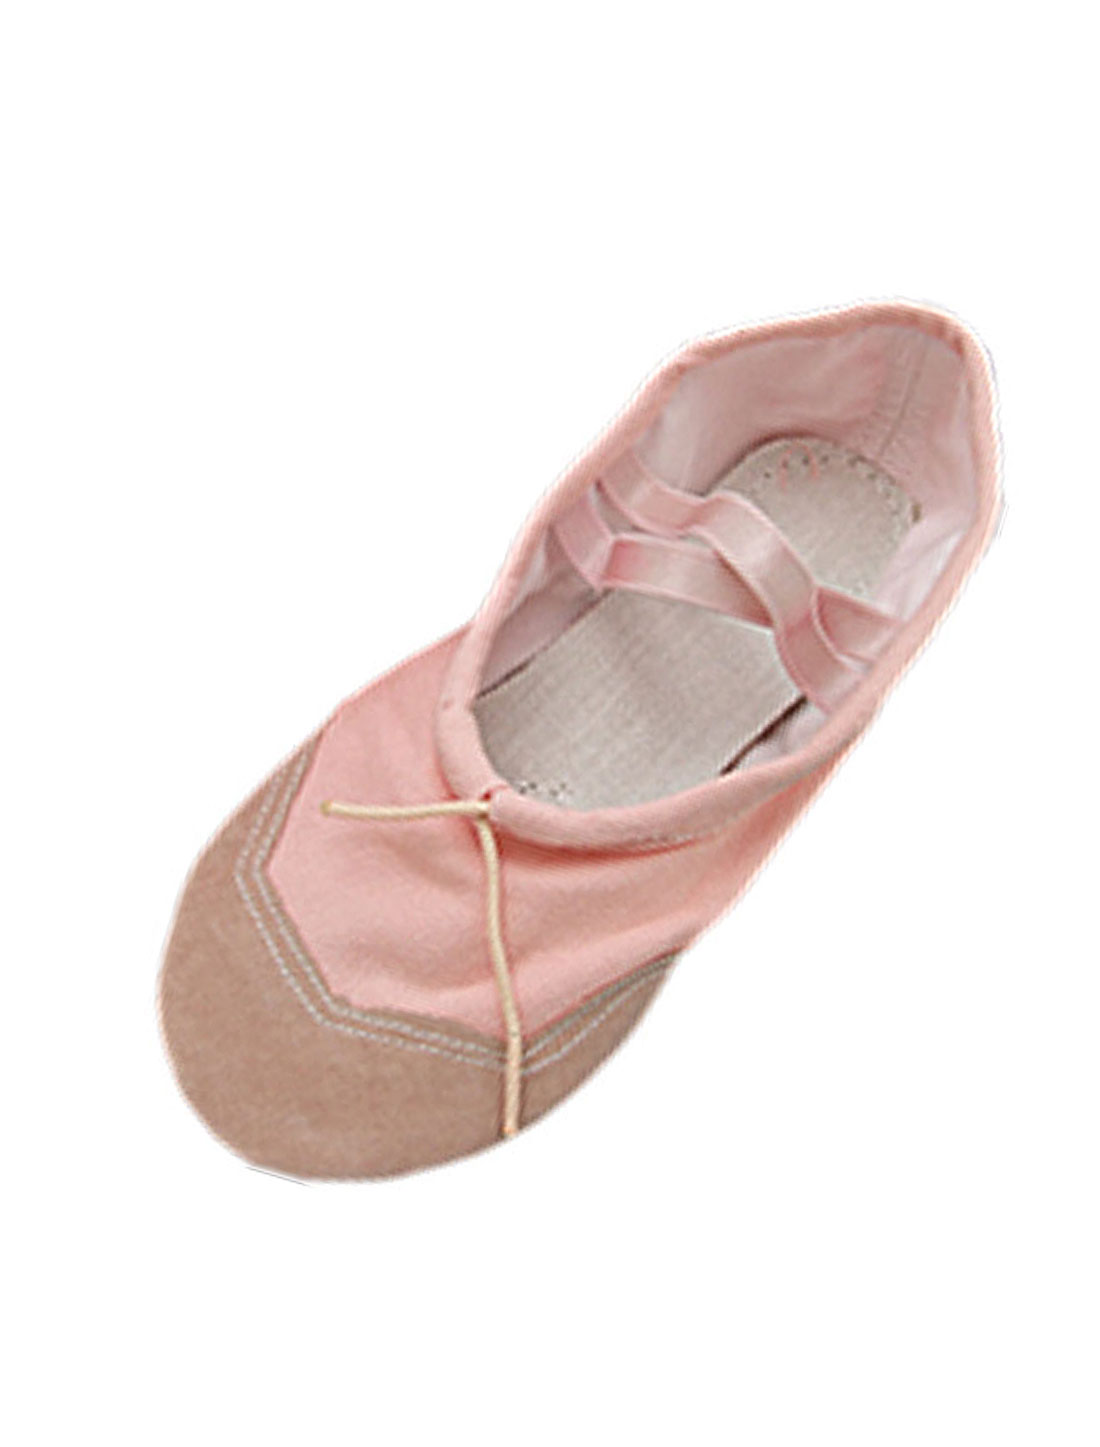 Fashion-Pink-Soft-Dancing-Dance-Ballet-Ladies-Shoes-Size-7-5